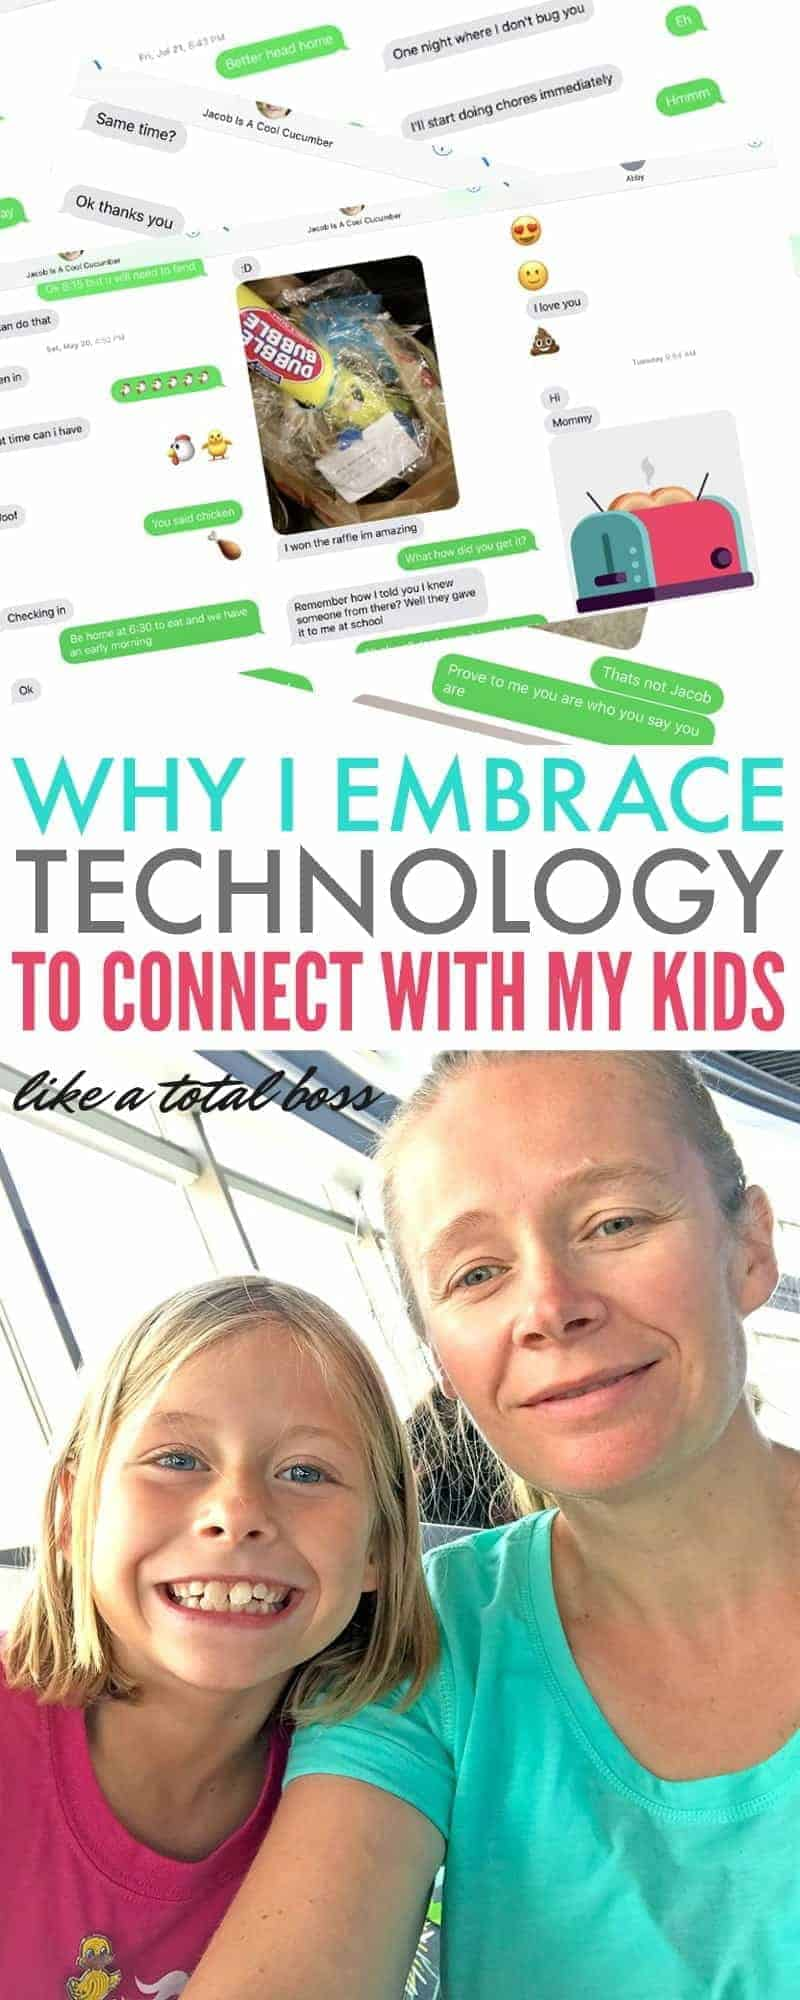 I held out for a long time! Learn why I finally embrace technology to connect with my kids and how to get the best deal in wireless so you stay on budget.